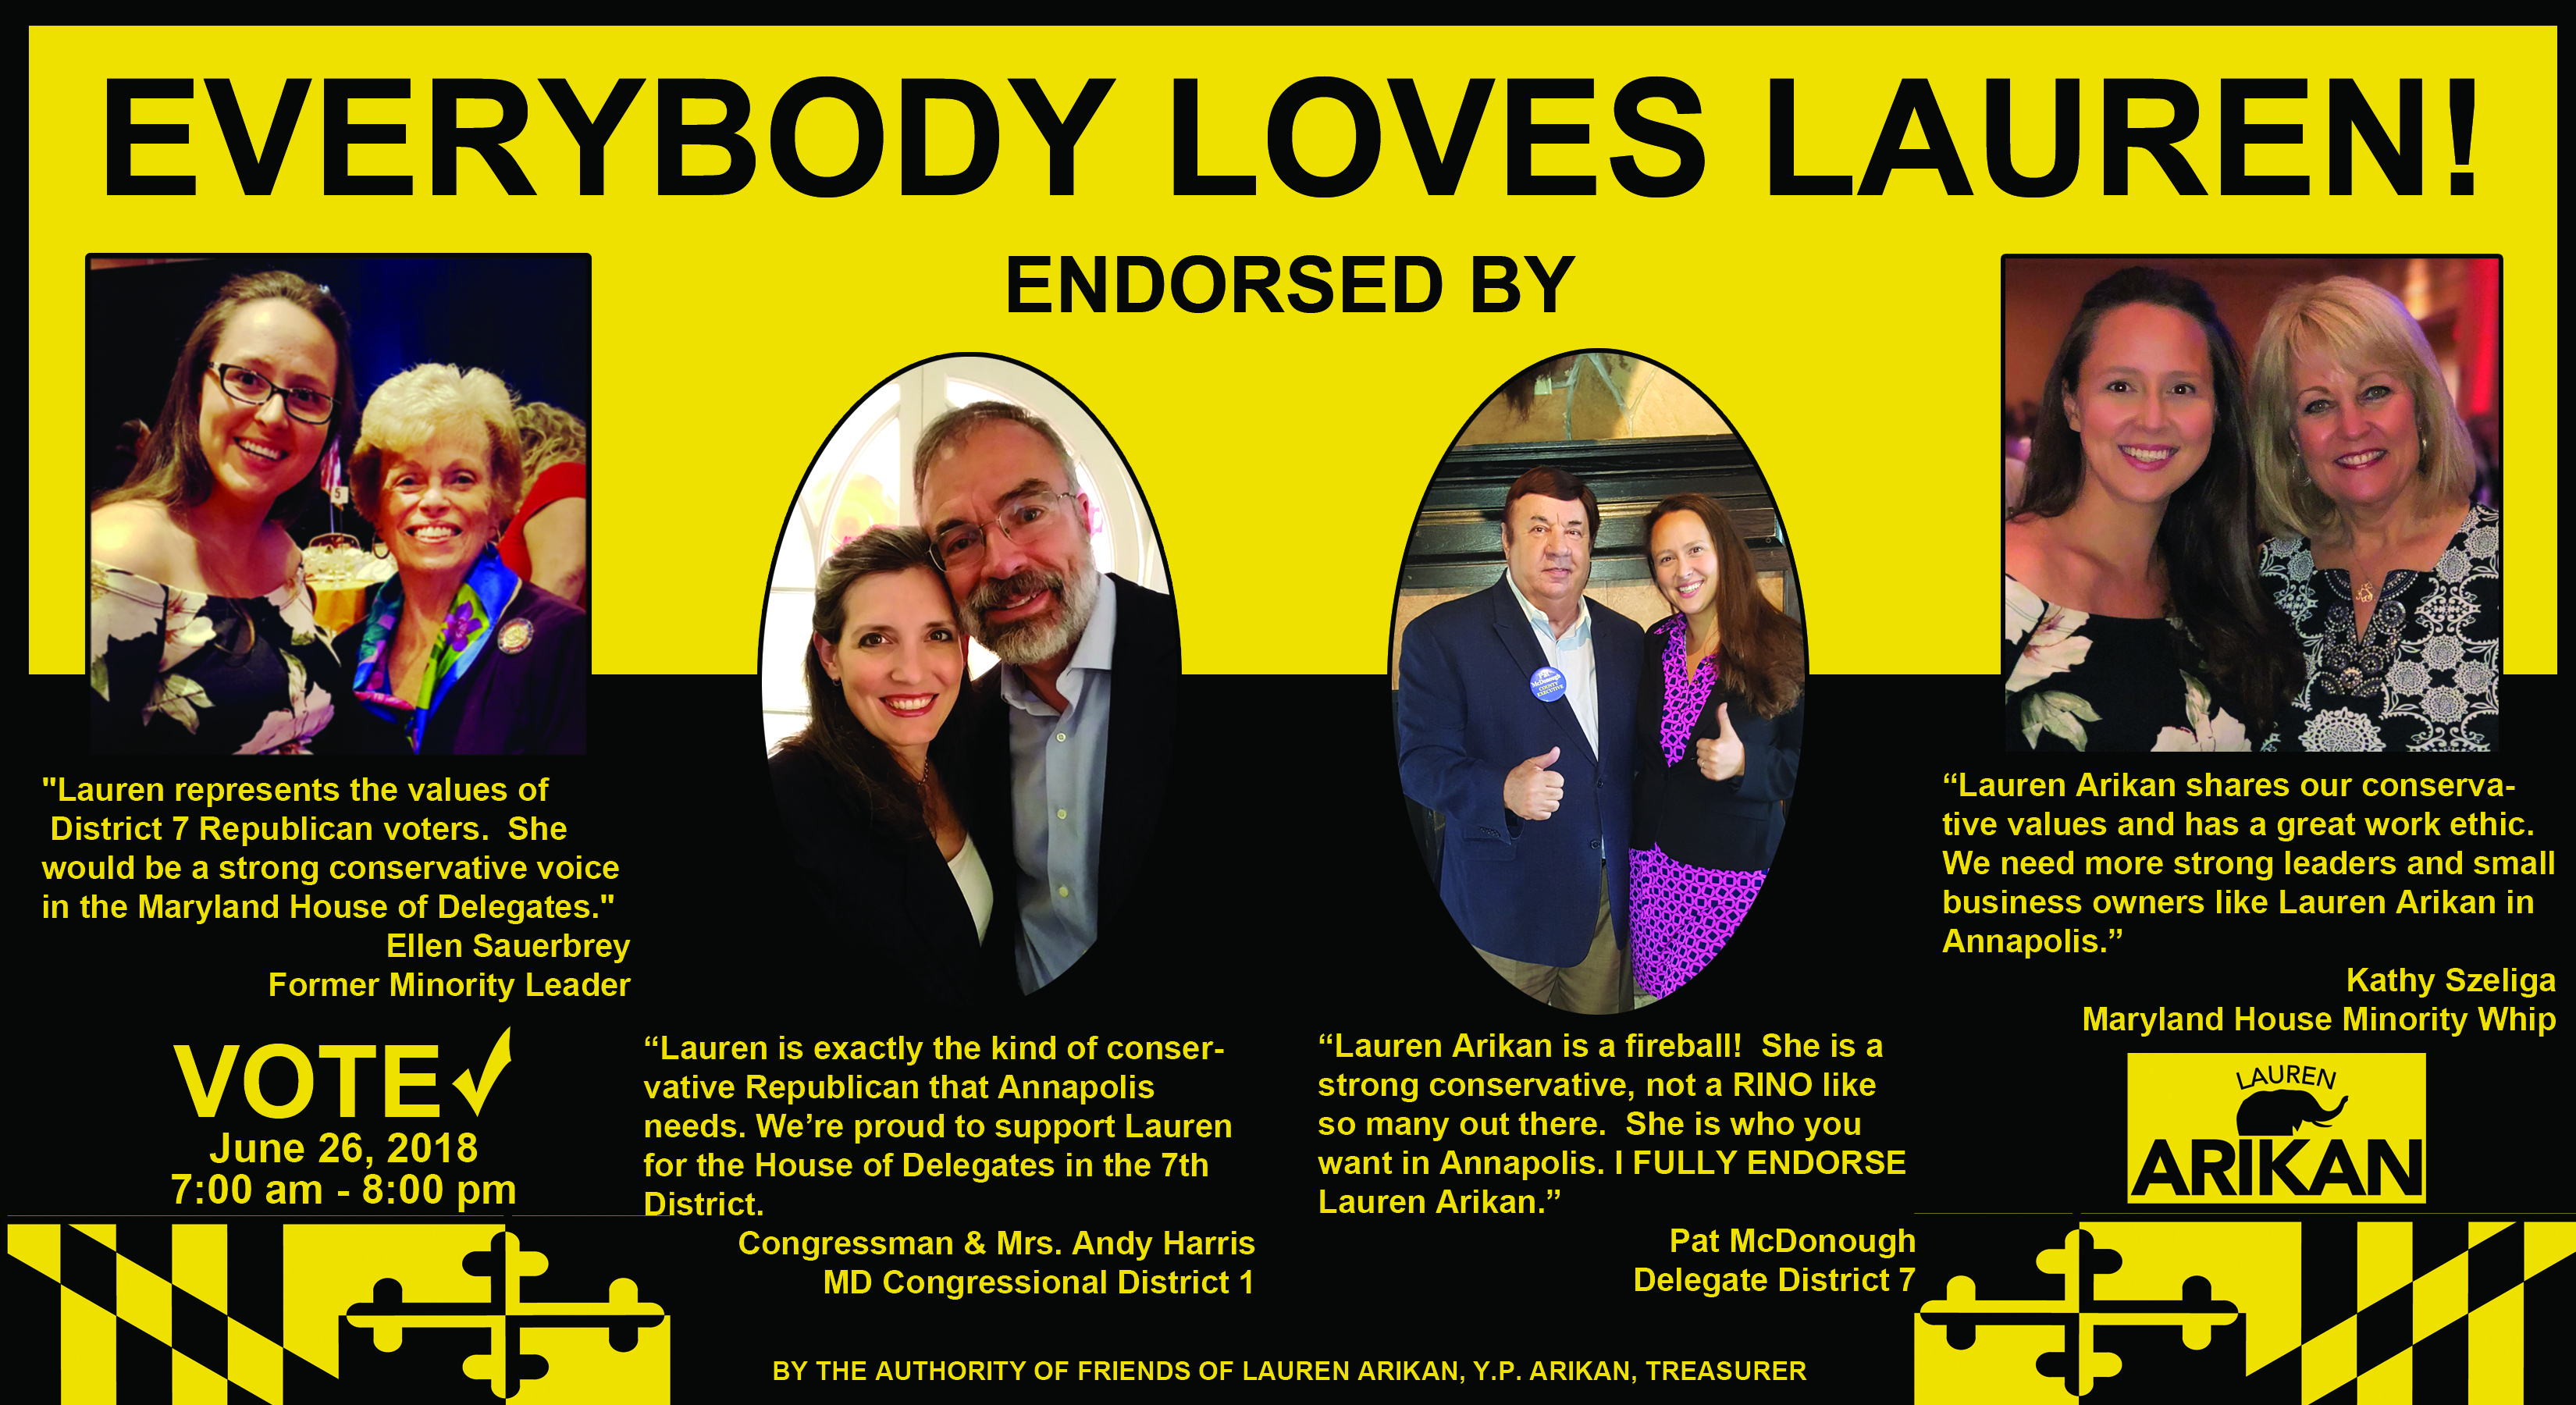 Lauren Arikan for Delegate mailer